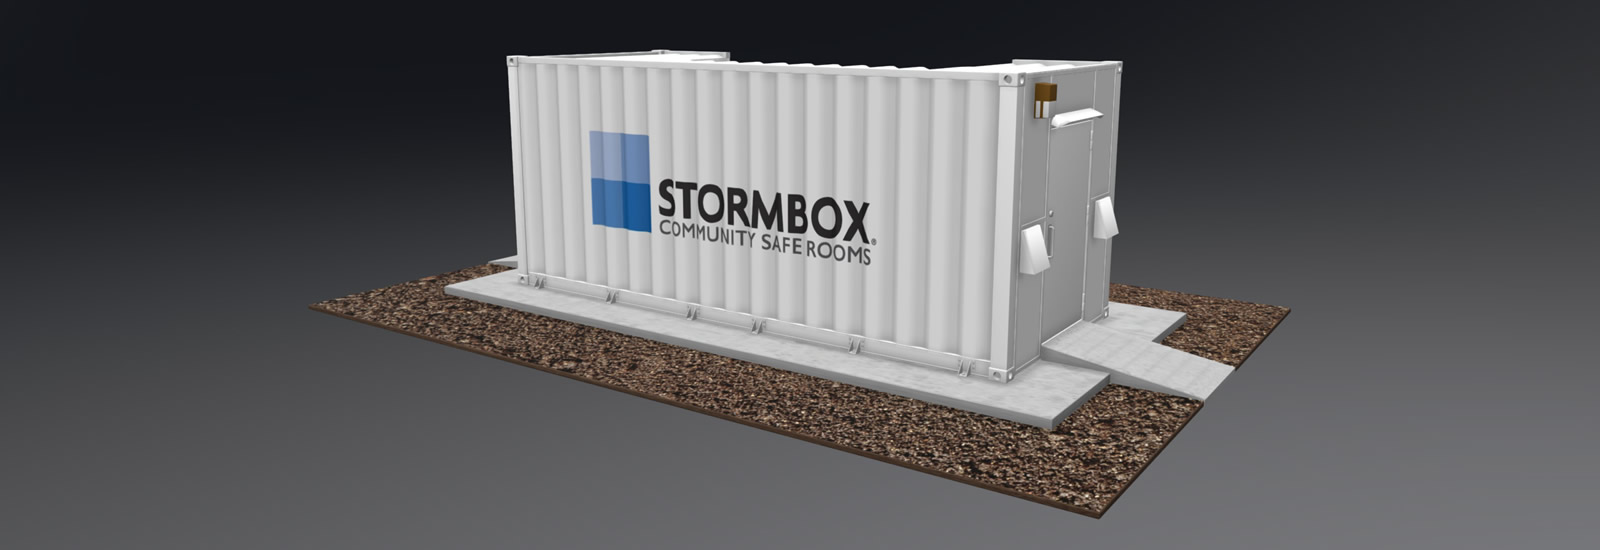 Products Stormbox